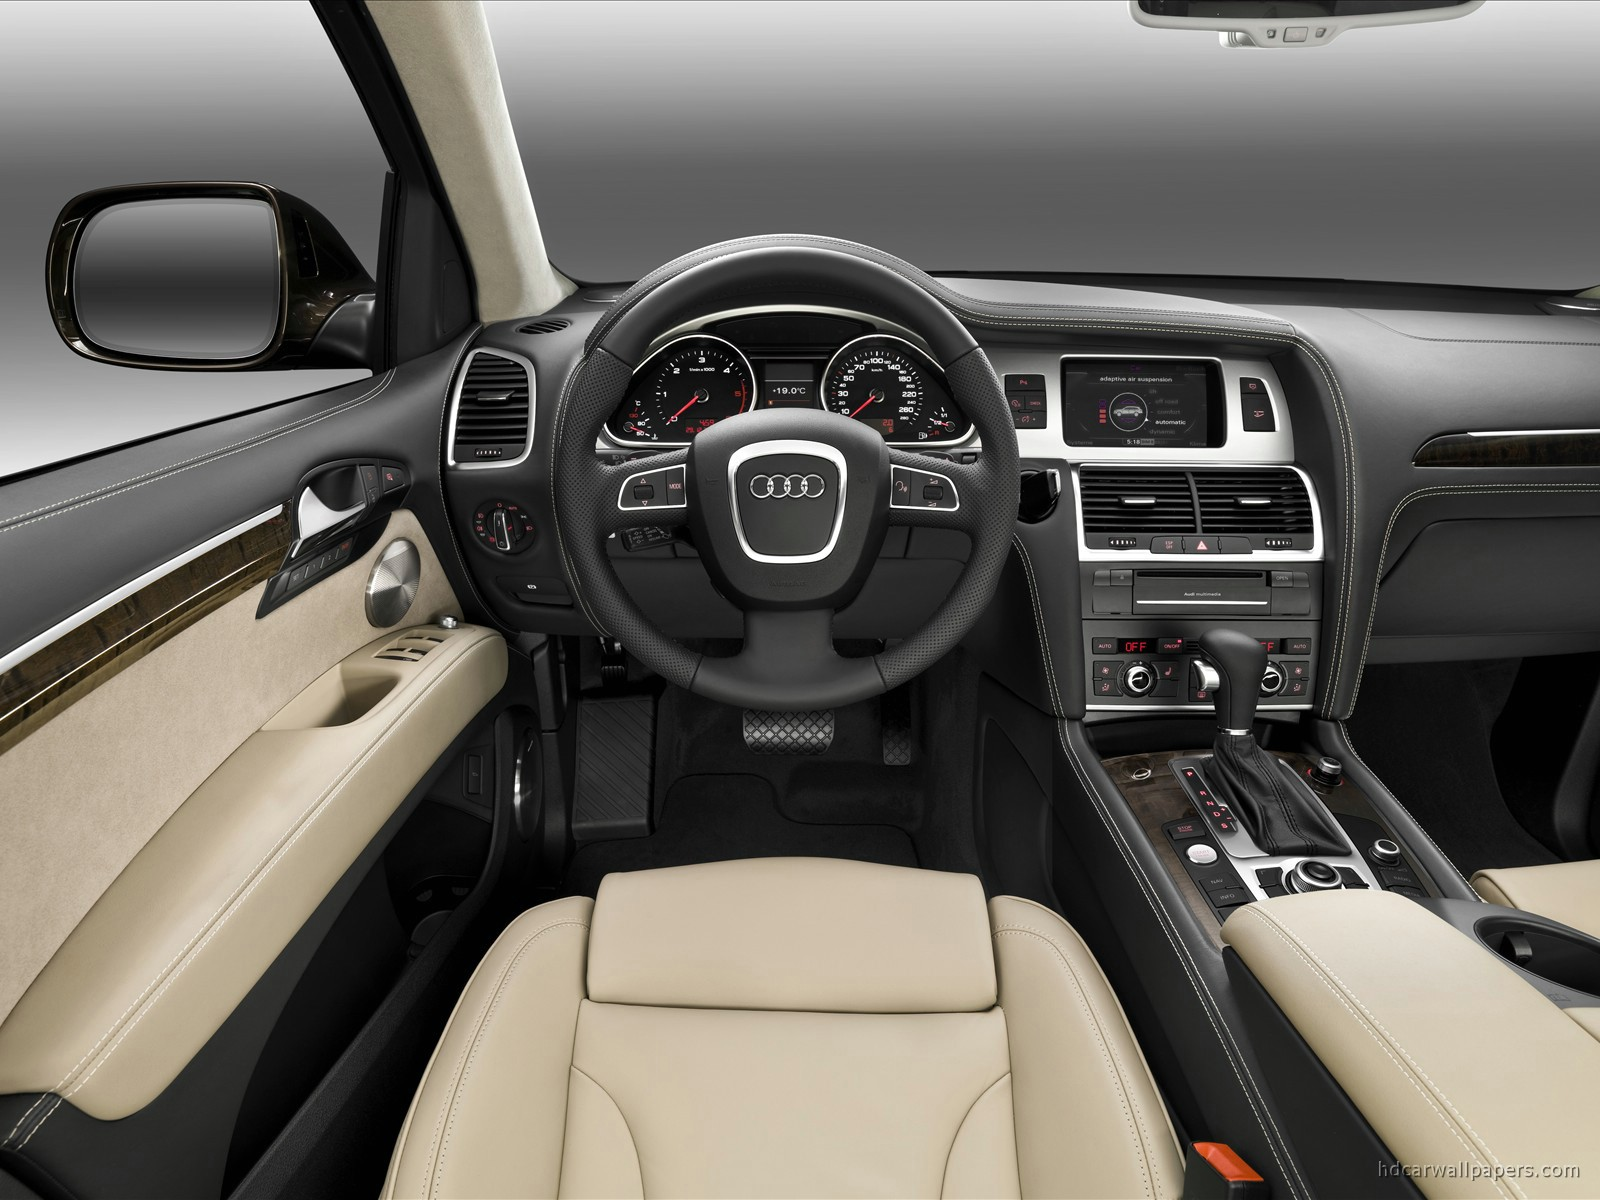 2010 Audi Q7 Interior Wallpaper | HD Car Wallpapers | ID #203